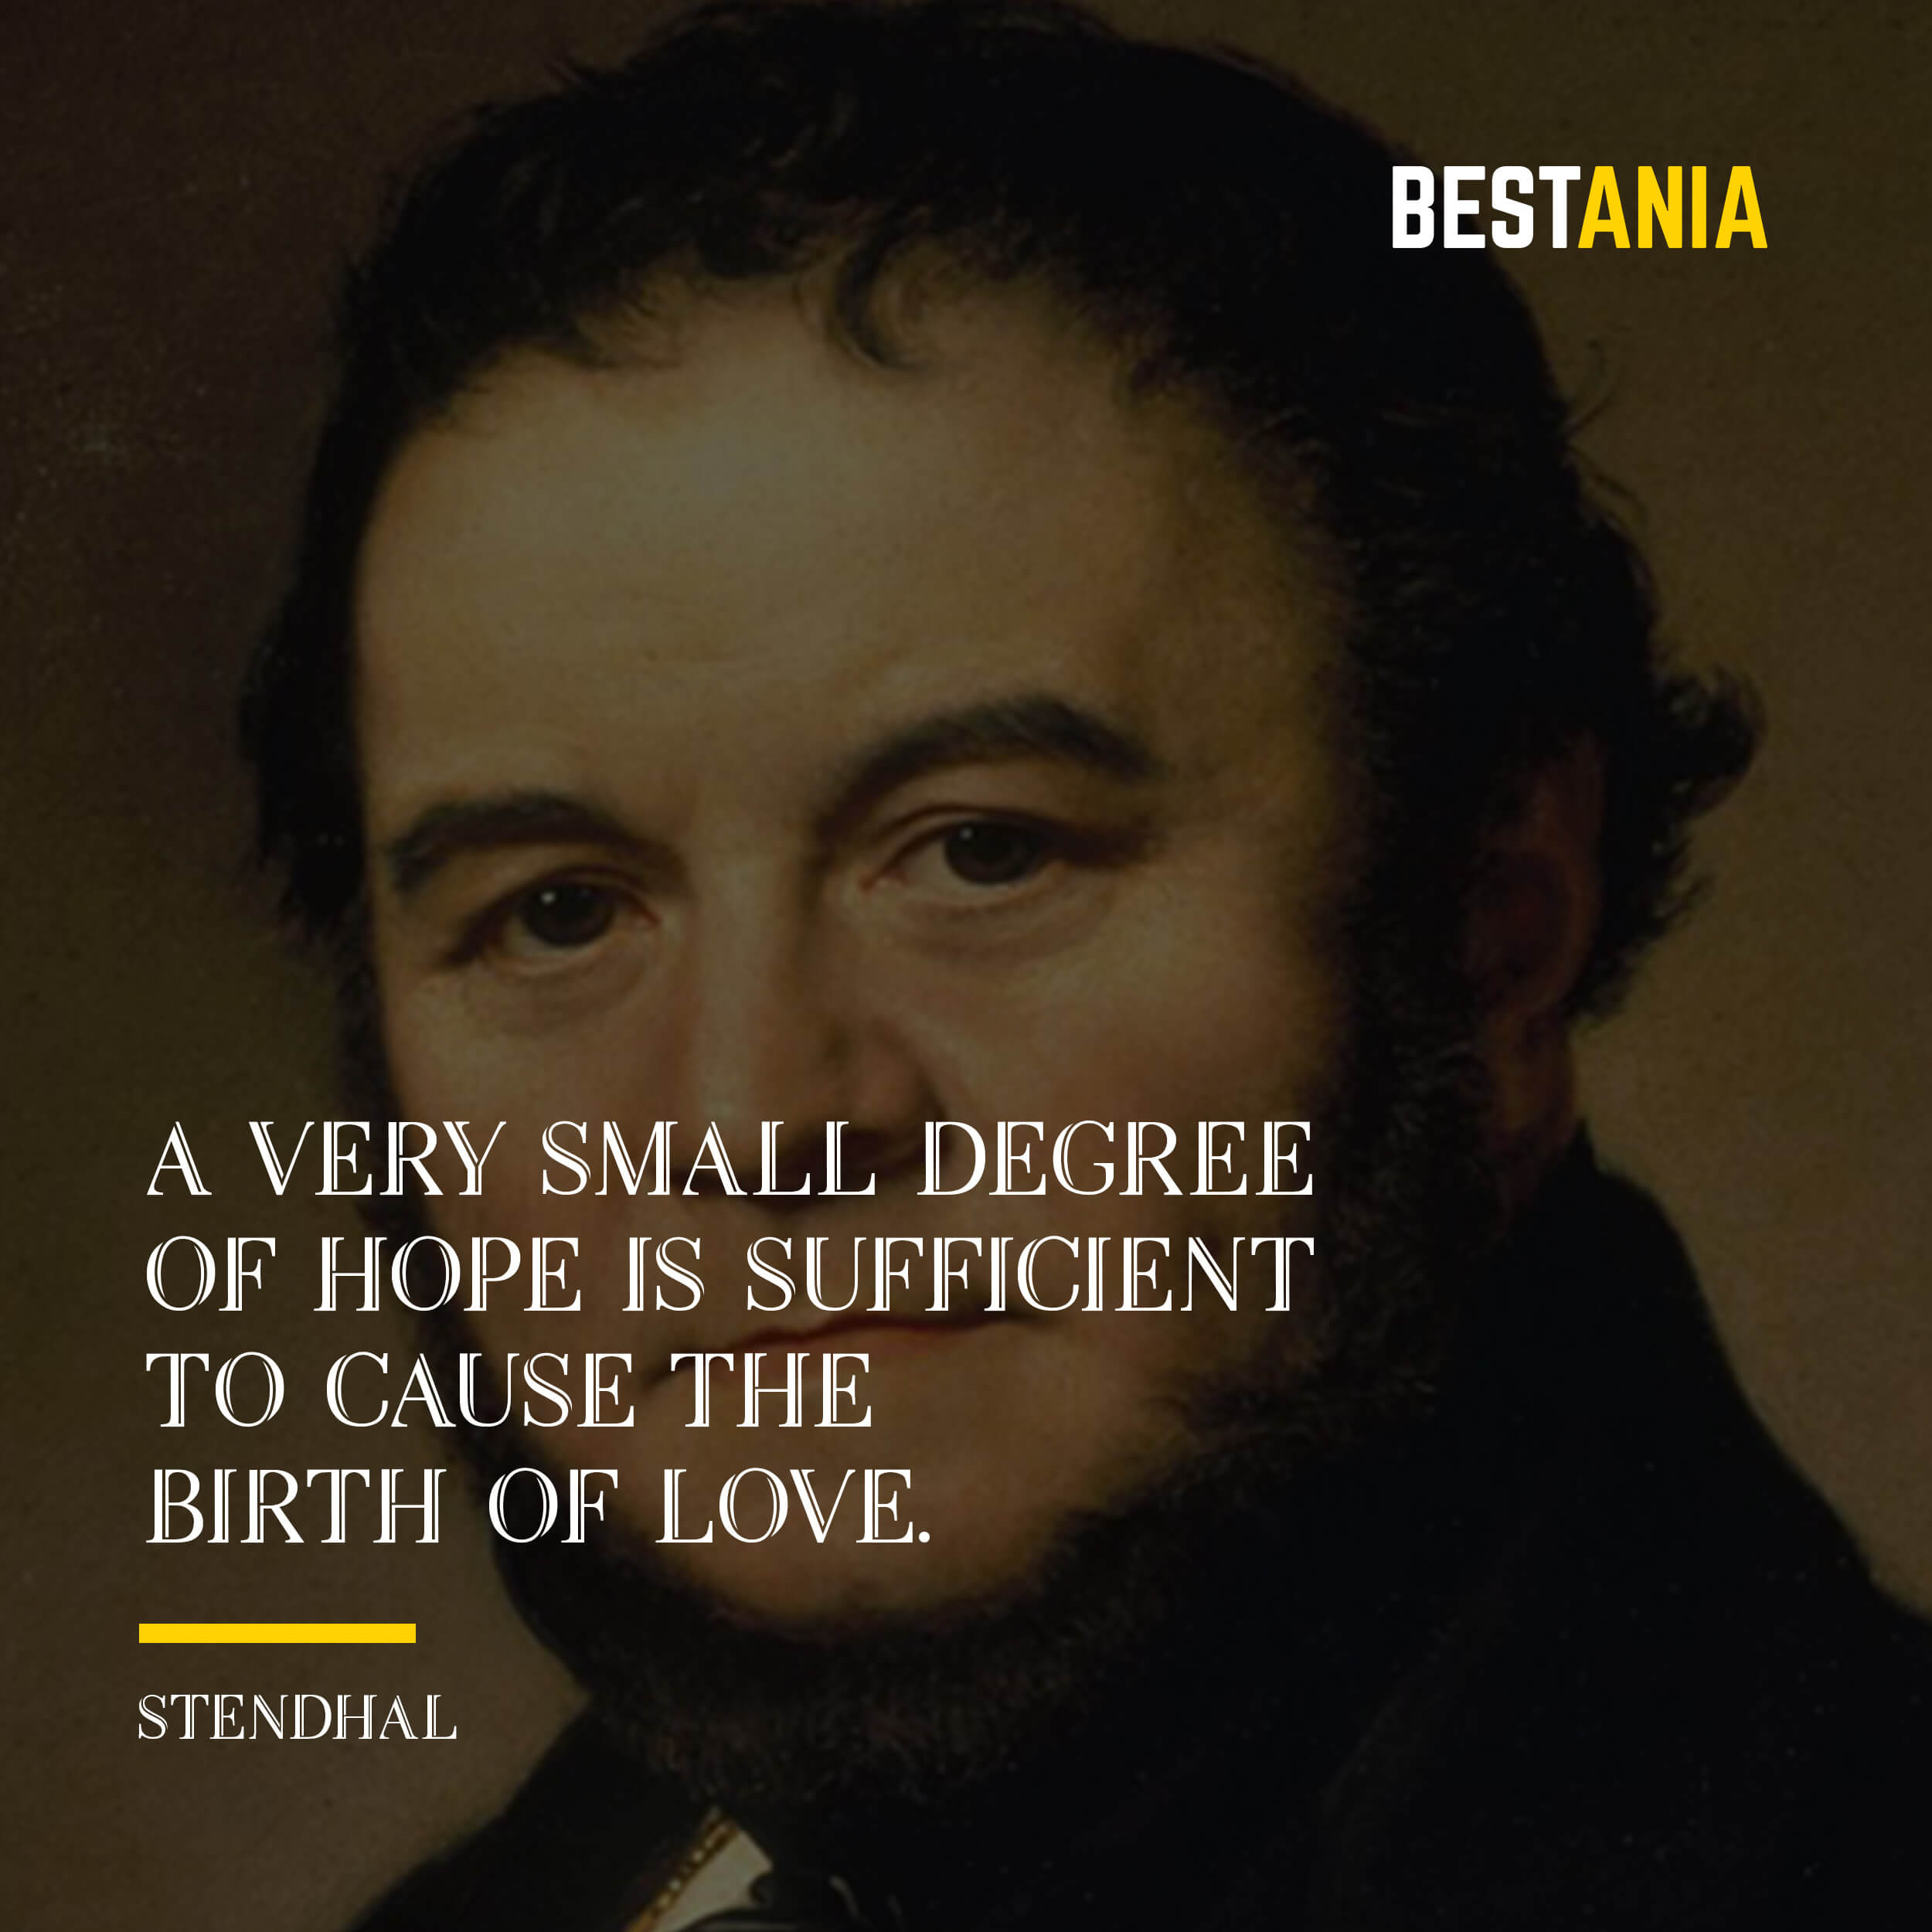 """A VERY SMALL DEGREE OF HOPE IS SUFFICIENT TO CAUSE THE BIRTH OF LOVE."" STENDHAL"